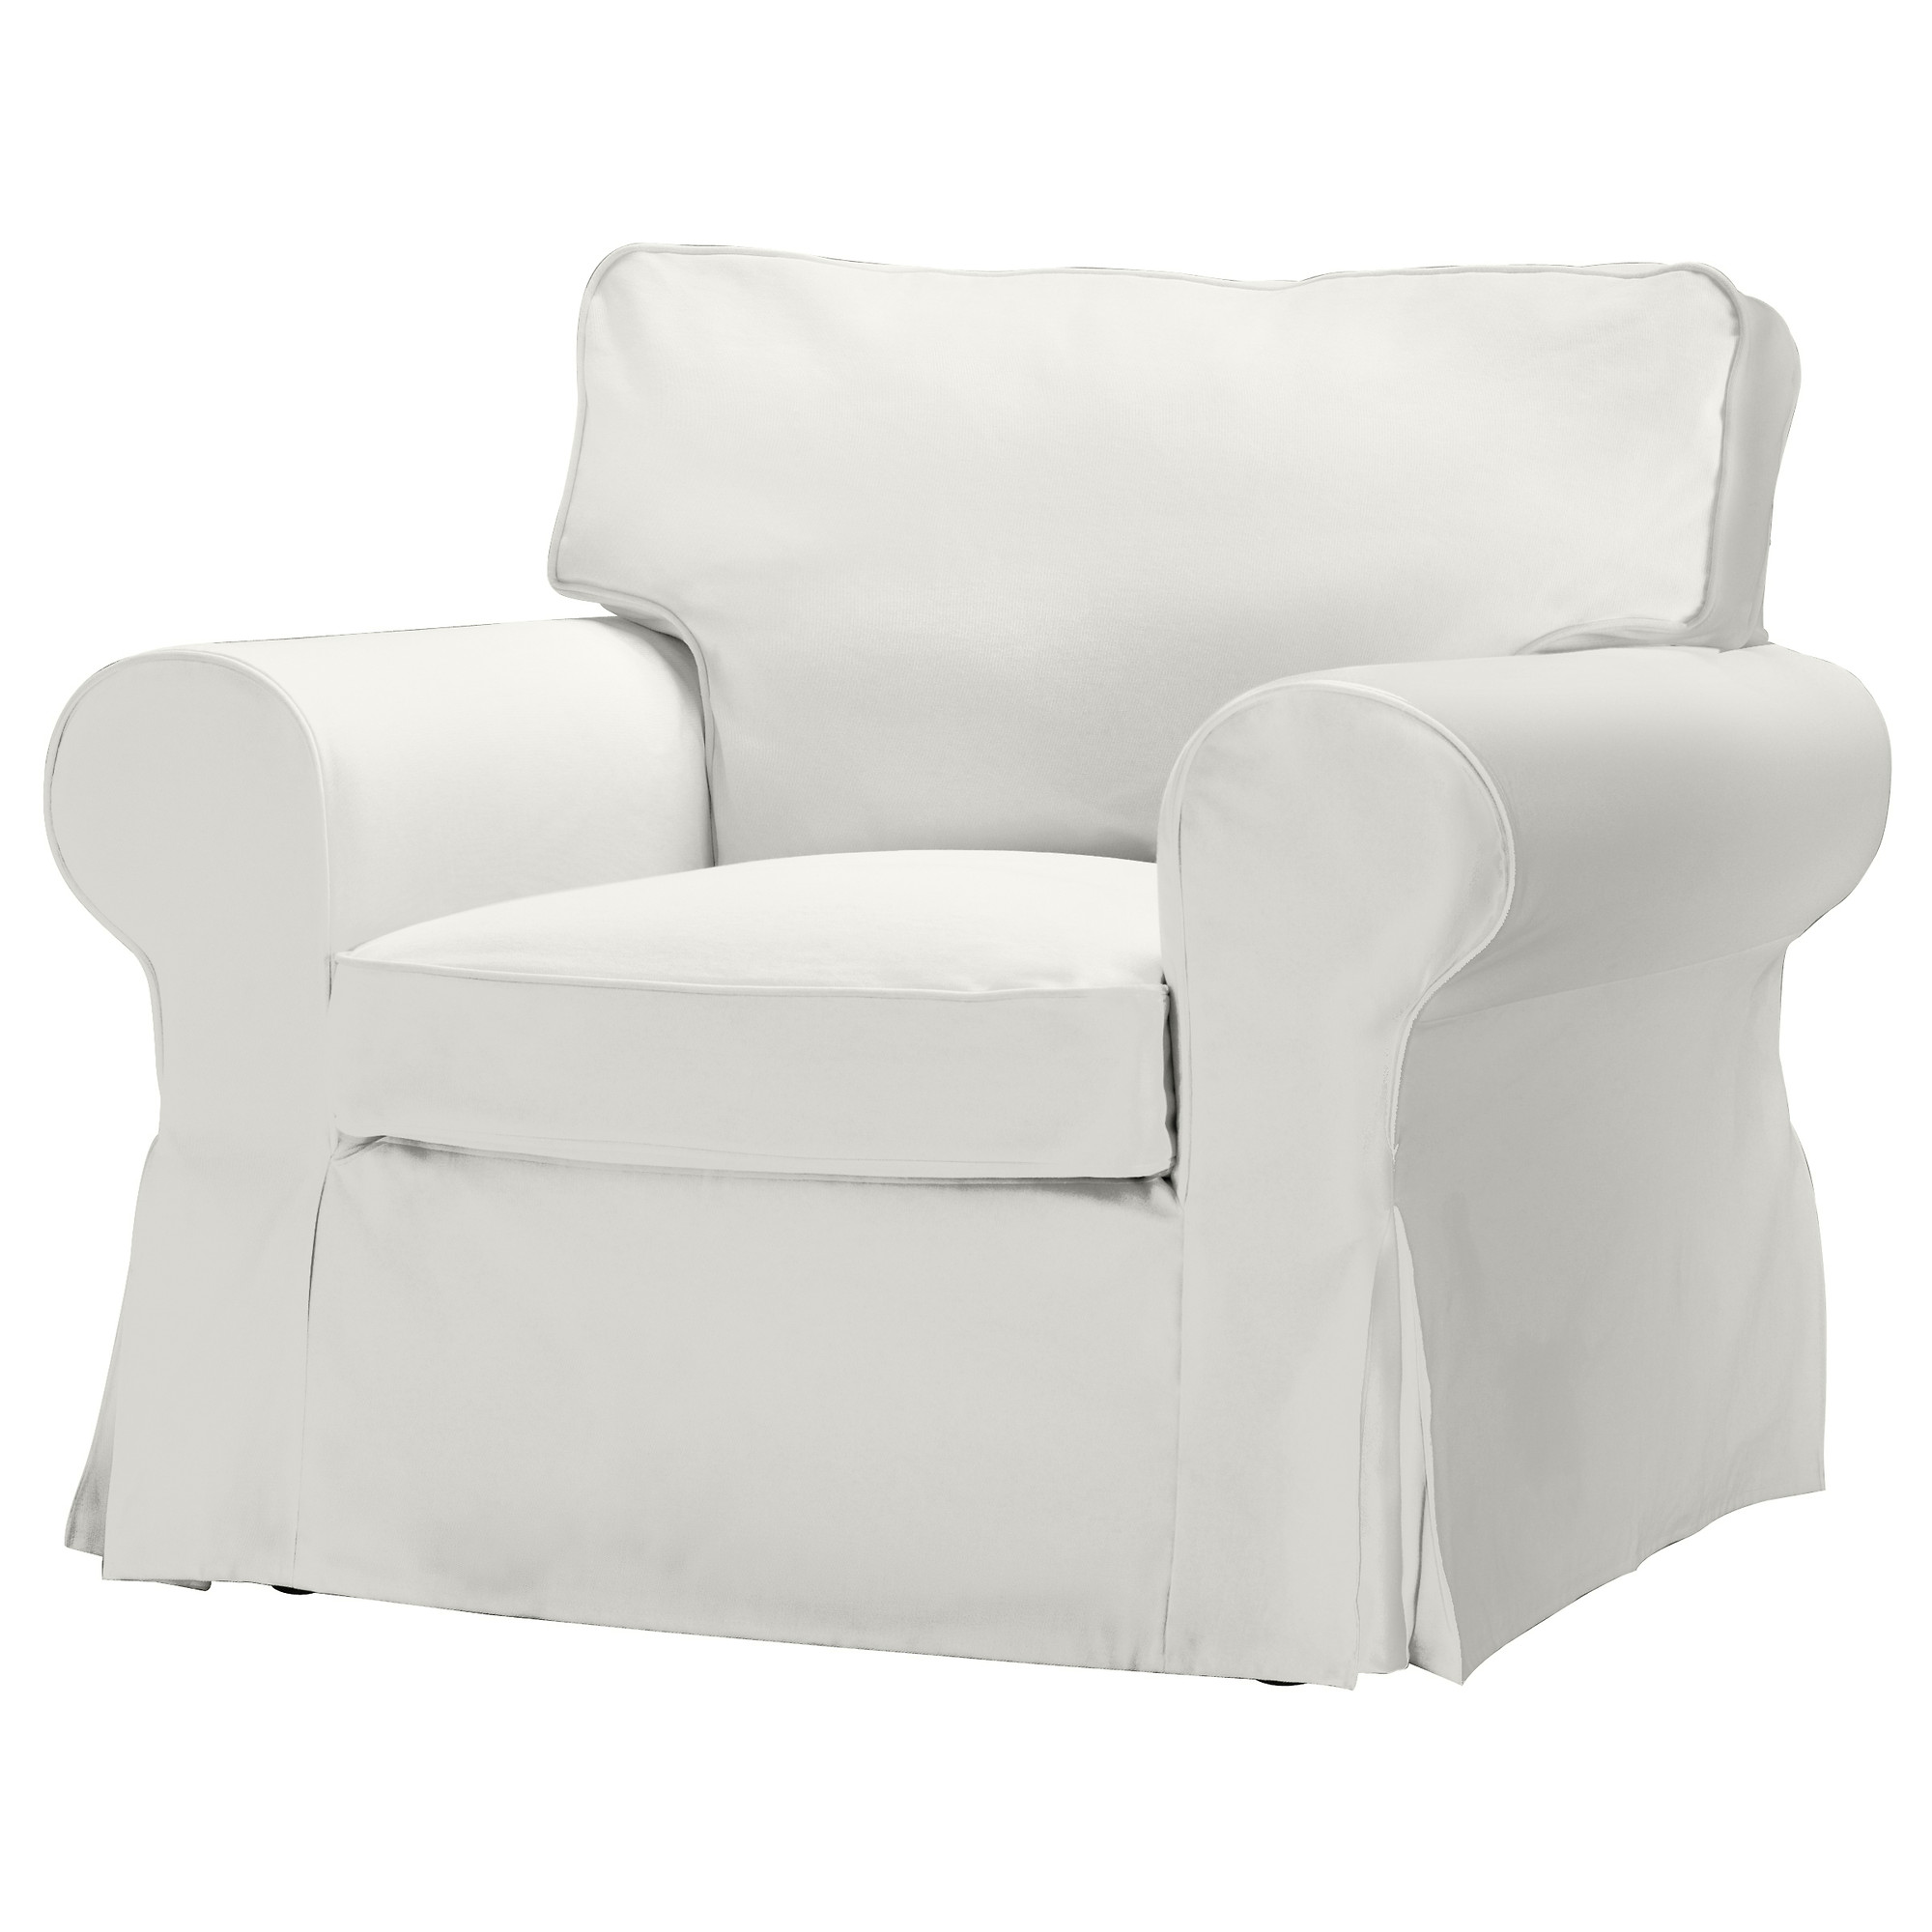 EKTORP Chair Blekinge white IKEA 249 Home design